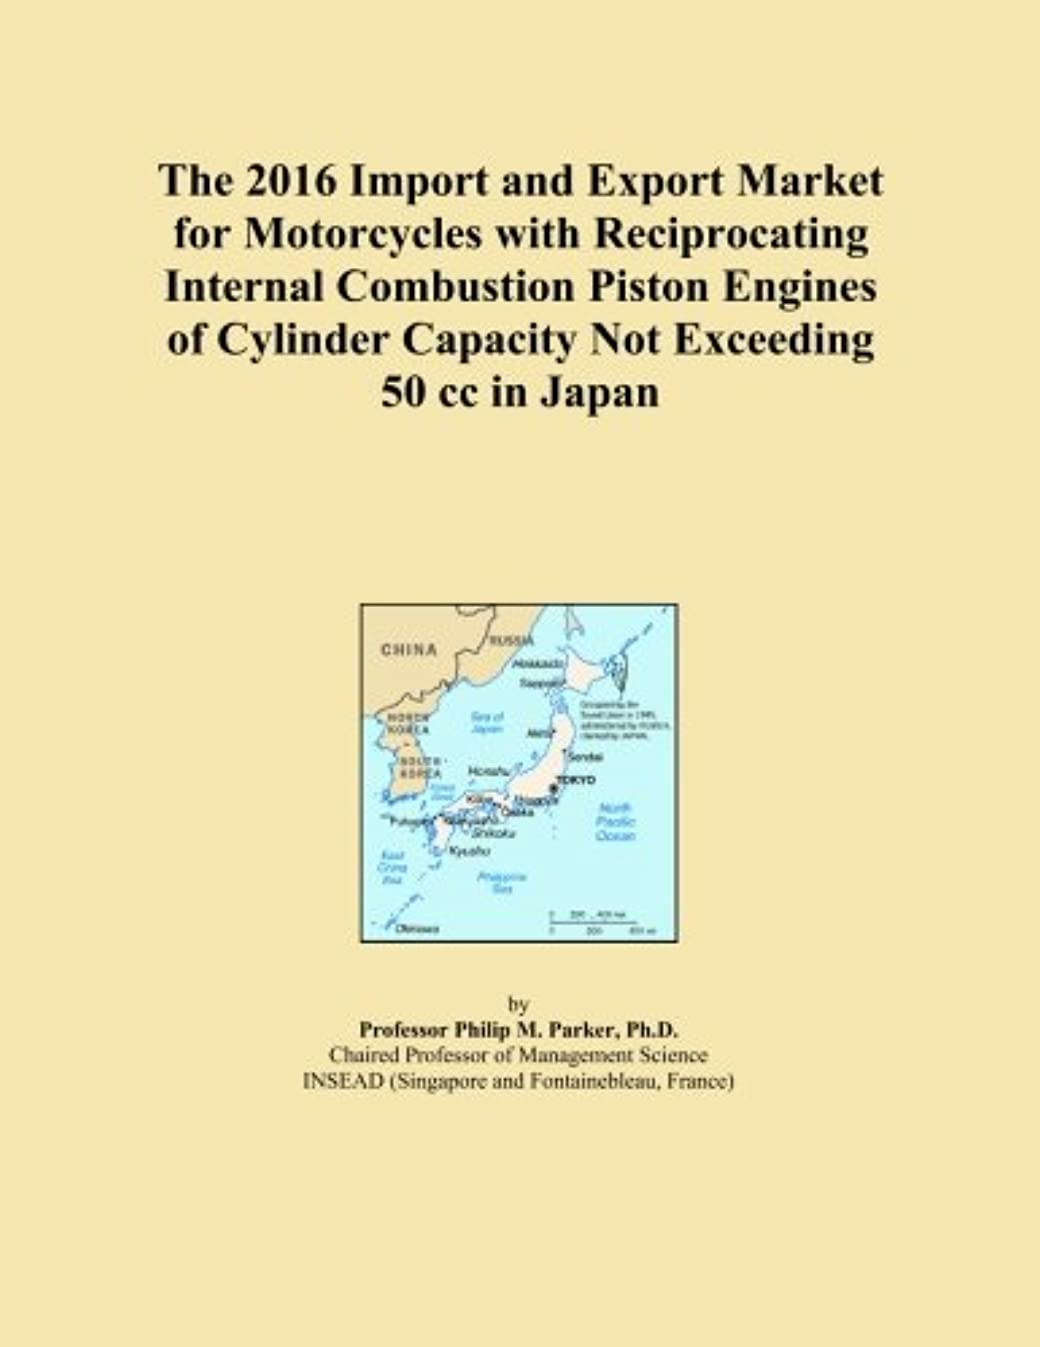 爆発するストローク祭りThe 2016 Import and Export Market for Motorcycles with Reciprocating Internal Combustion Piston Engines of Cylinder Capacity Not Exceeding 50 cc in Japan